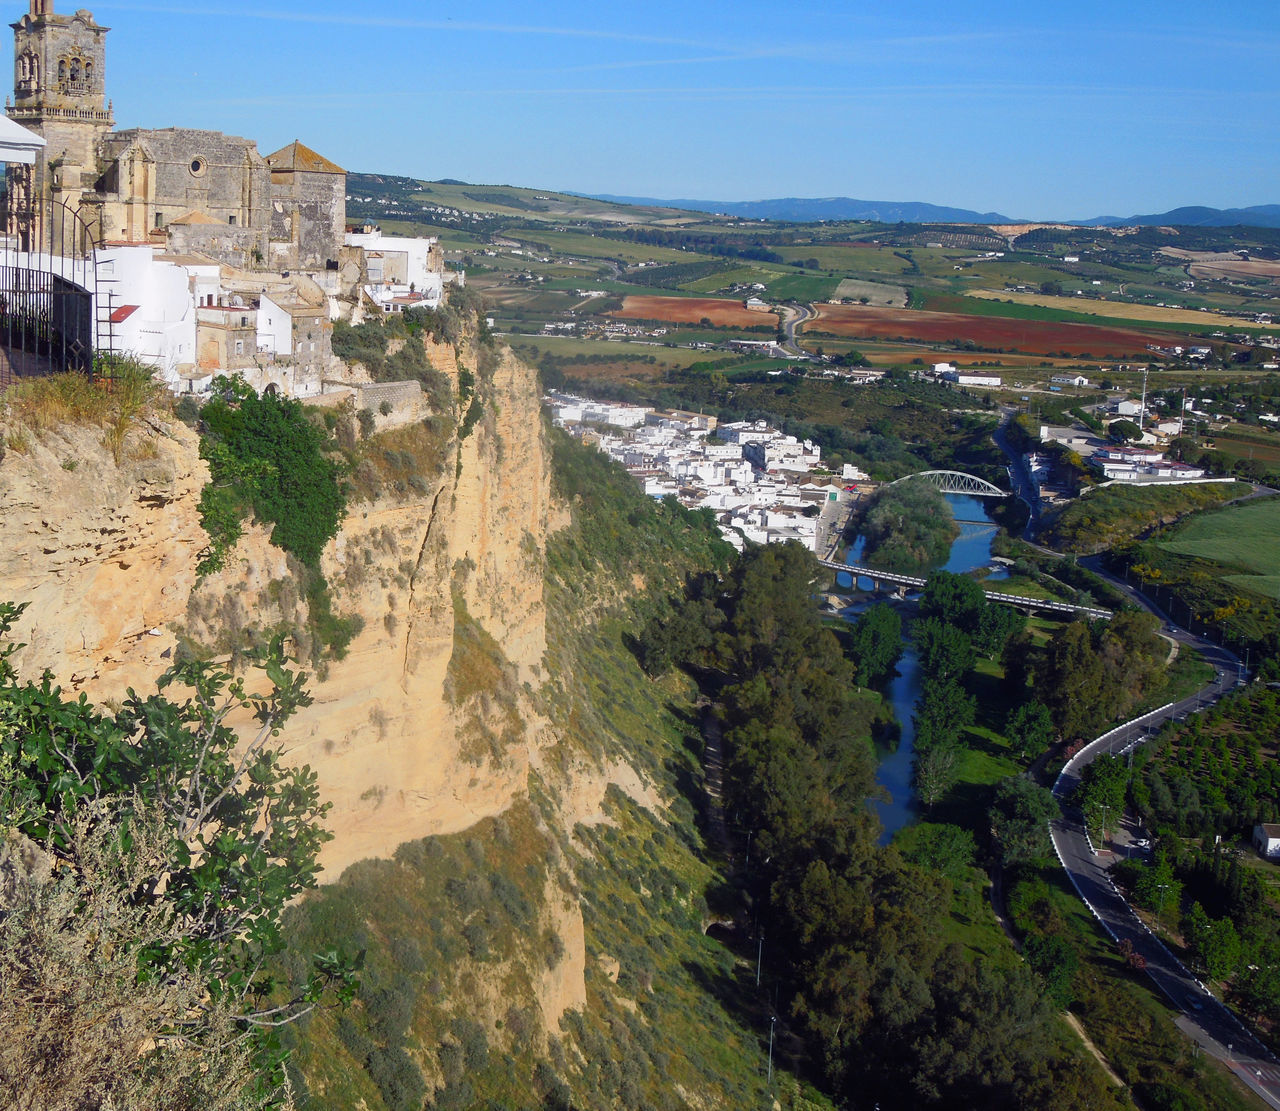 Andalucía Architecture Arcos De La Frontera Building Exterior City Cityscape Guadalete Rio River Rock Formation Sky Travel Destinations